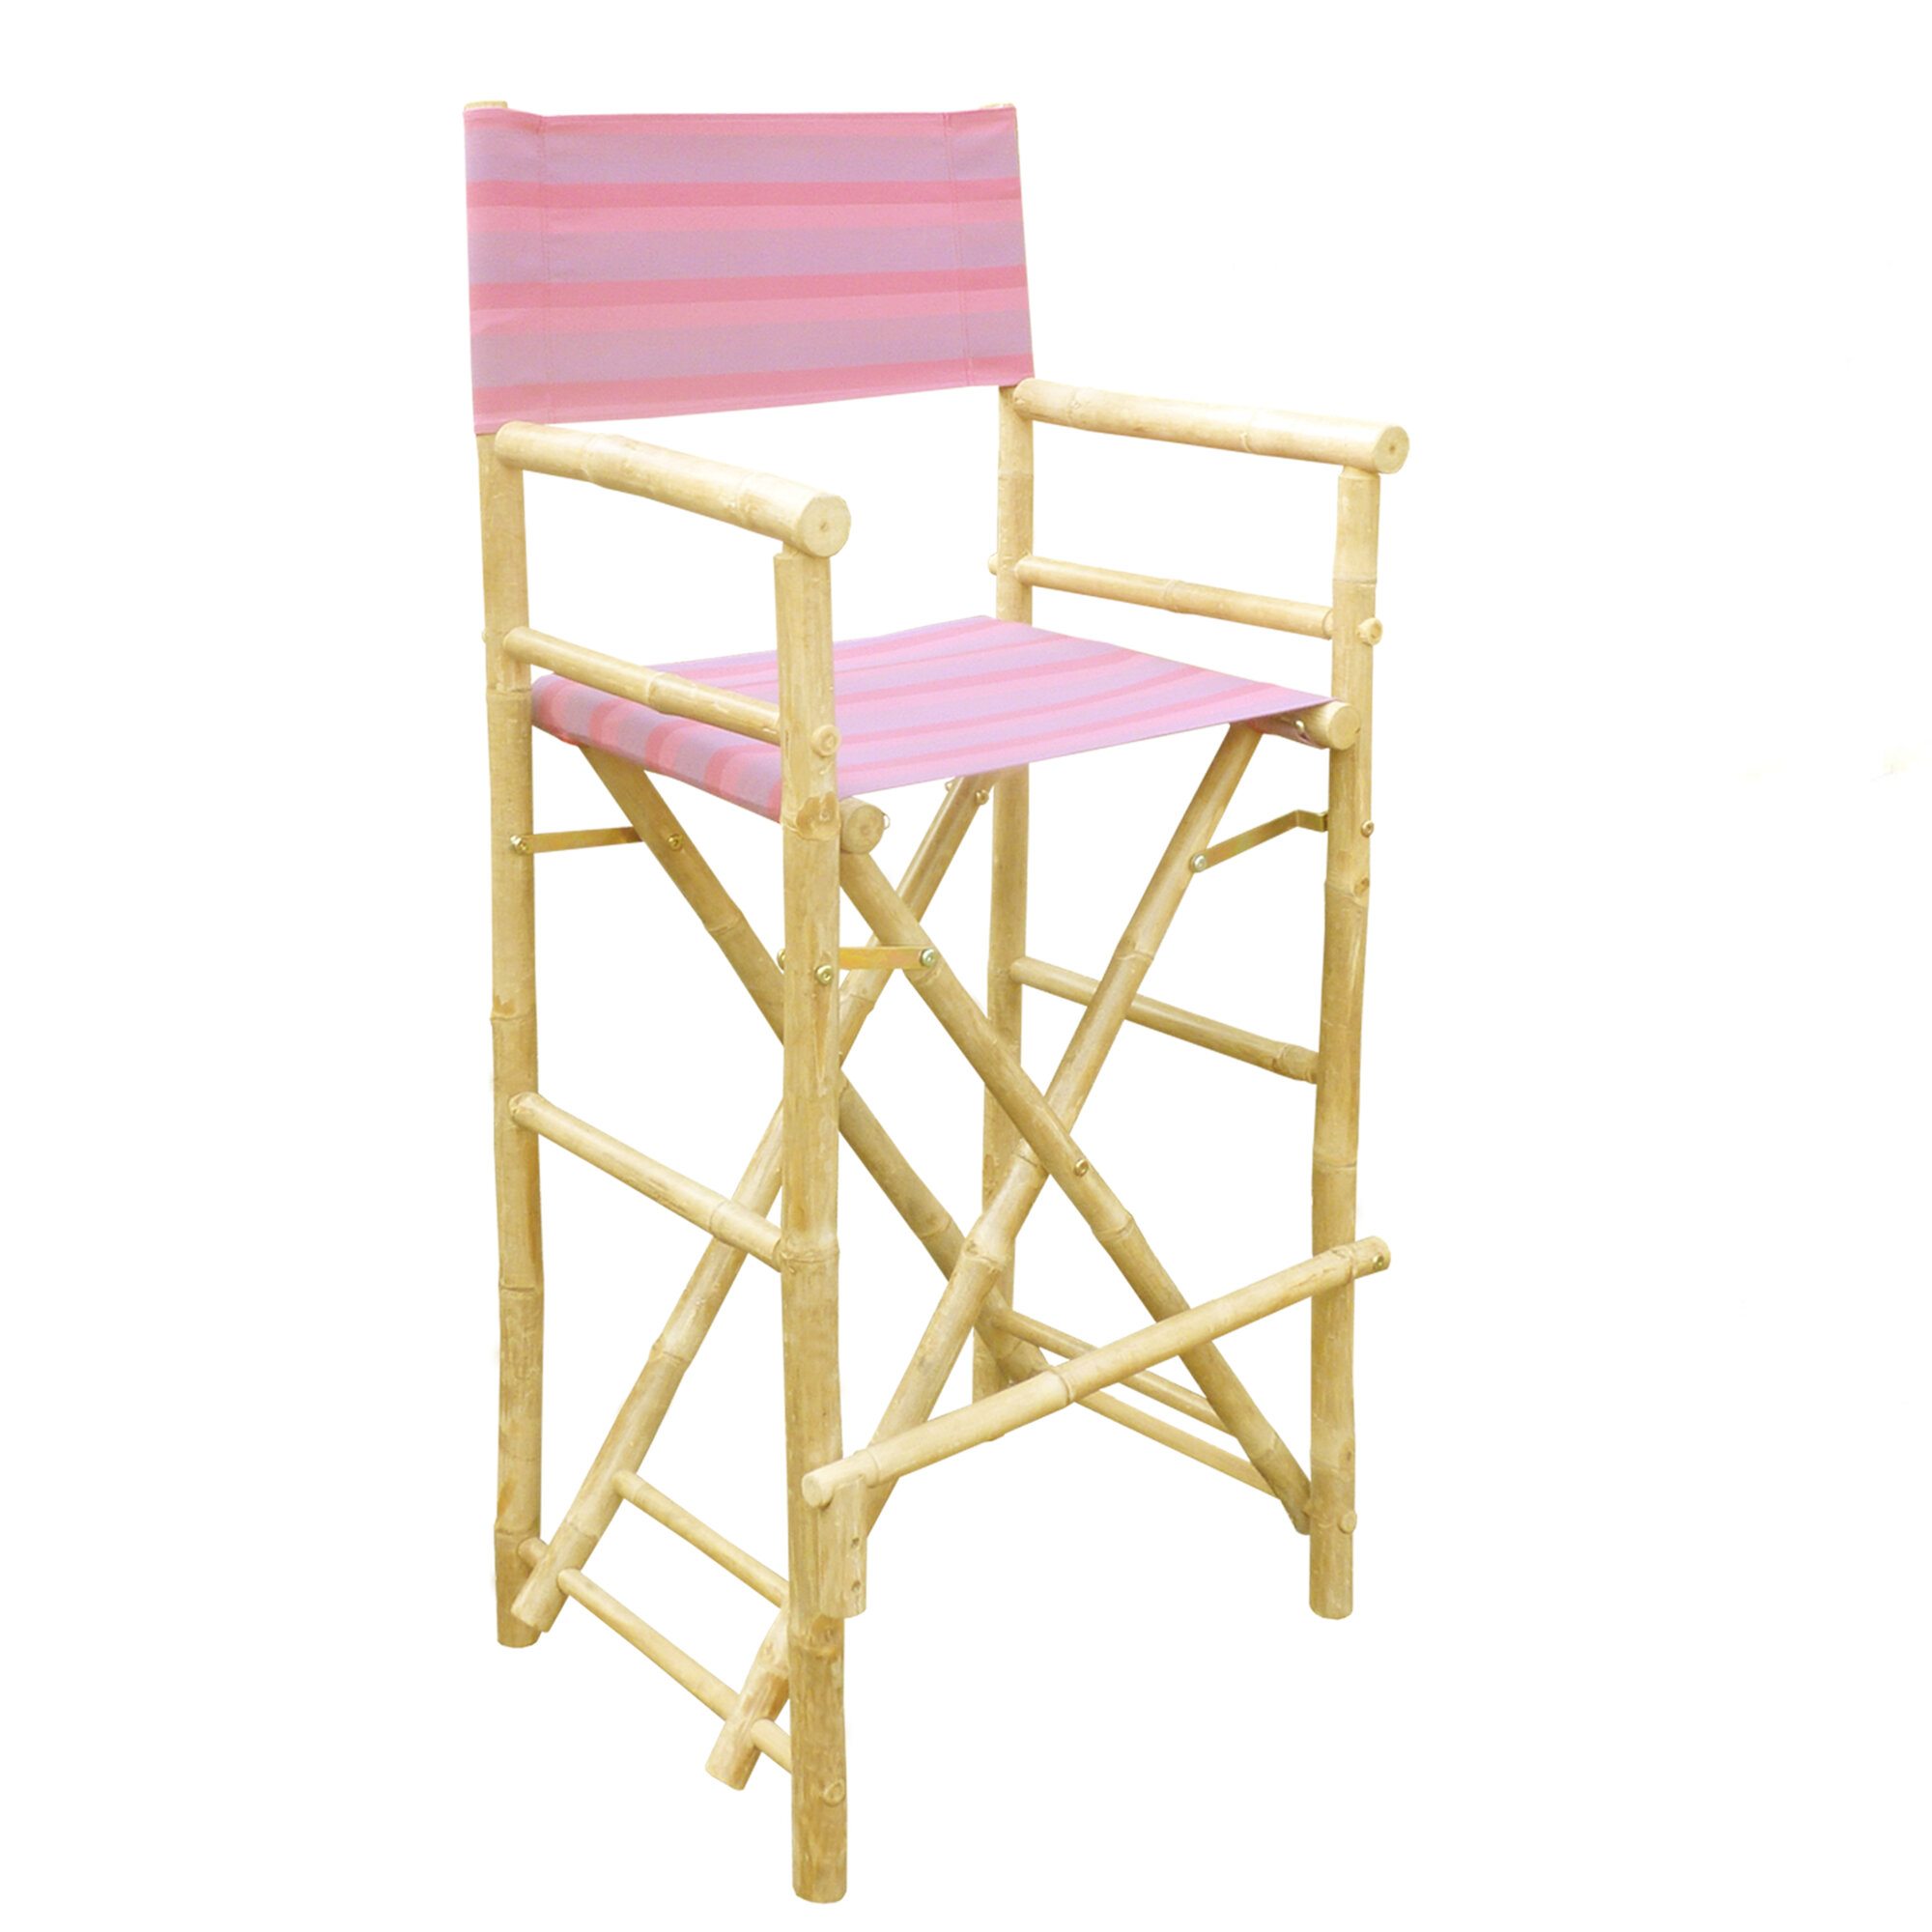 Cool Details About Bay Isle Home Carsdale Bamboo 32 Counter Chair Patio Bar Stool Byil2468 Inzonedesignstudio Interior Chair Design Inzonedesignstudiocom